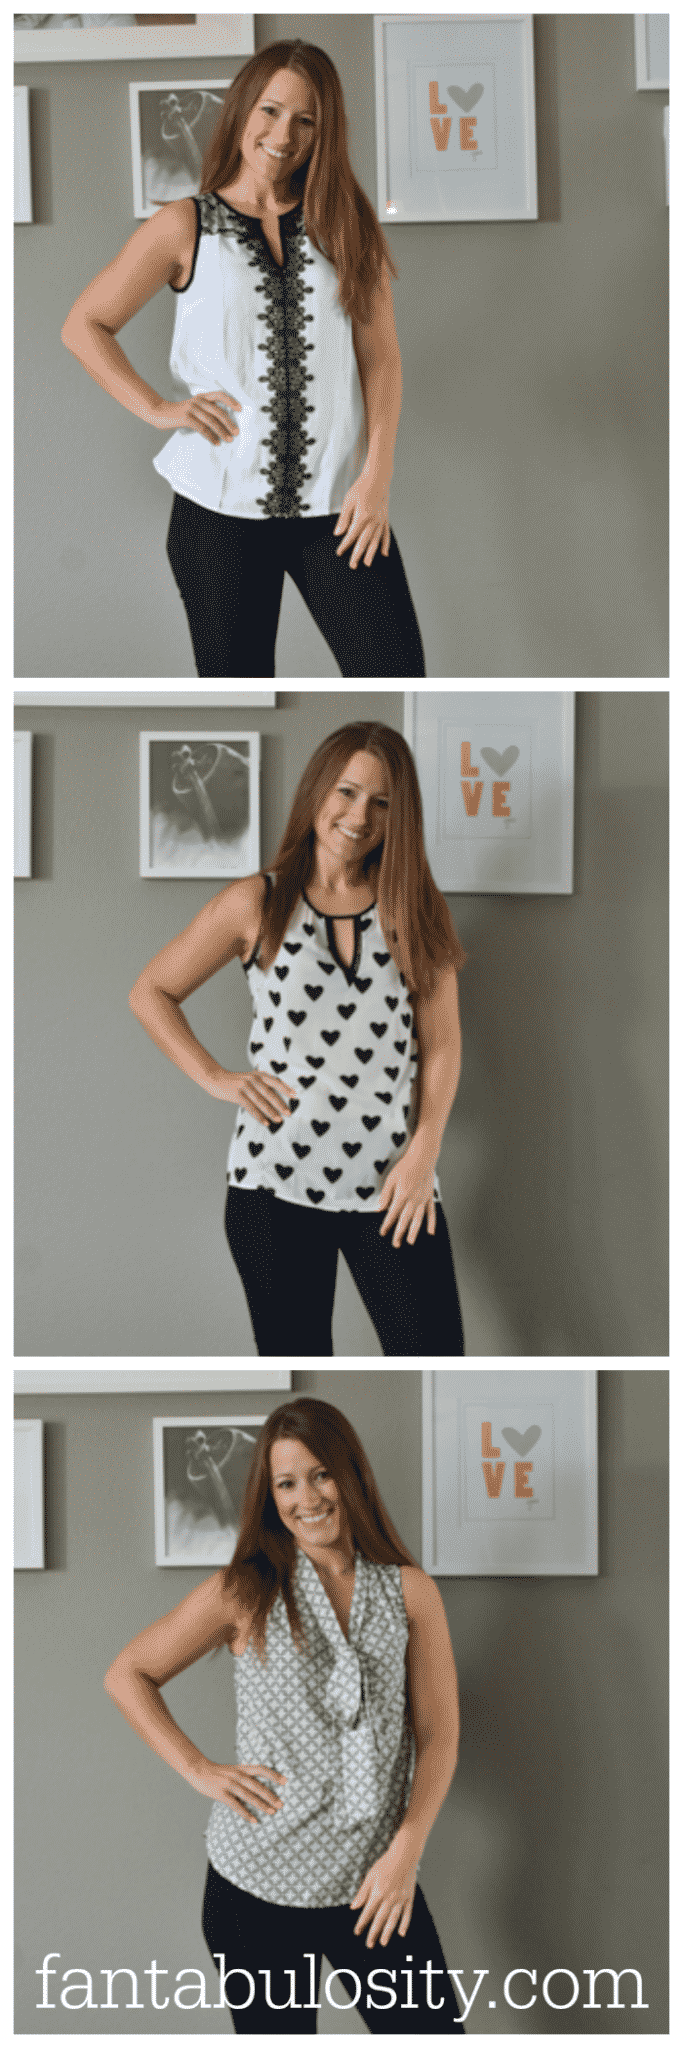 June 2015 Stitch Fix Review Unboxing Video and Photos! https://fantabulosity.com